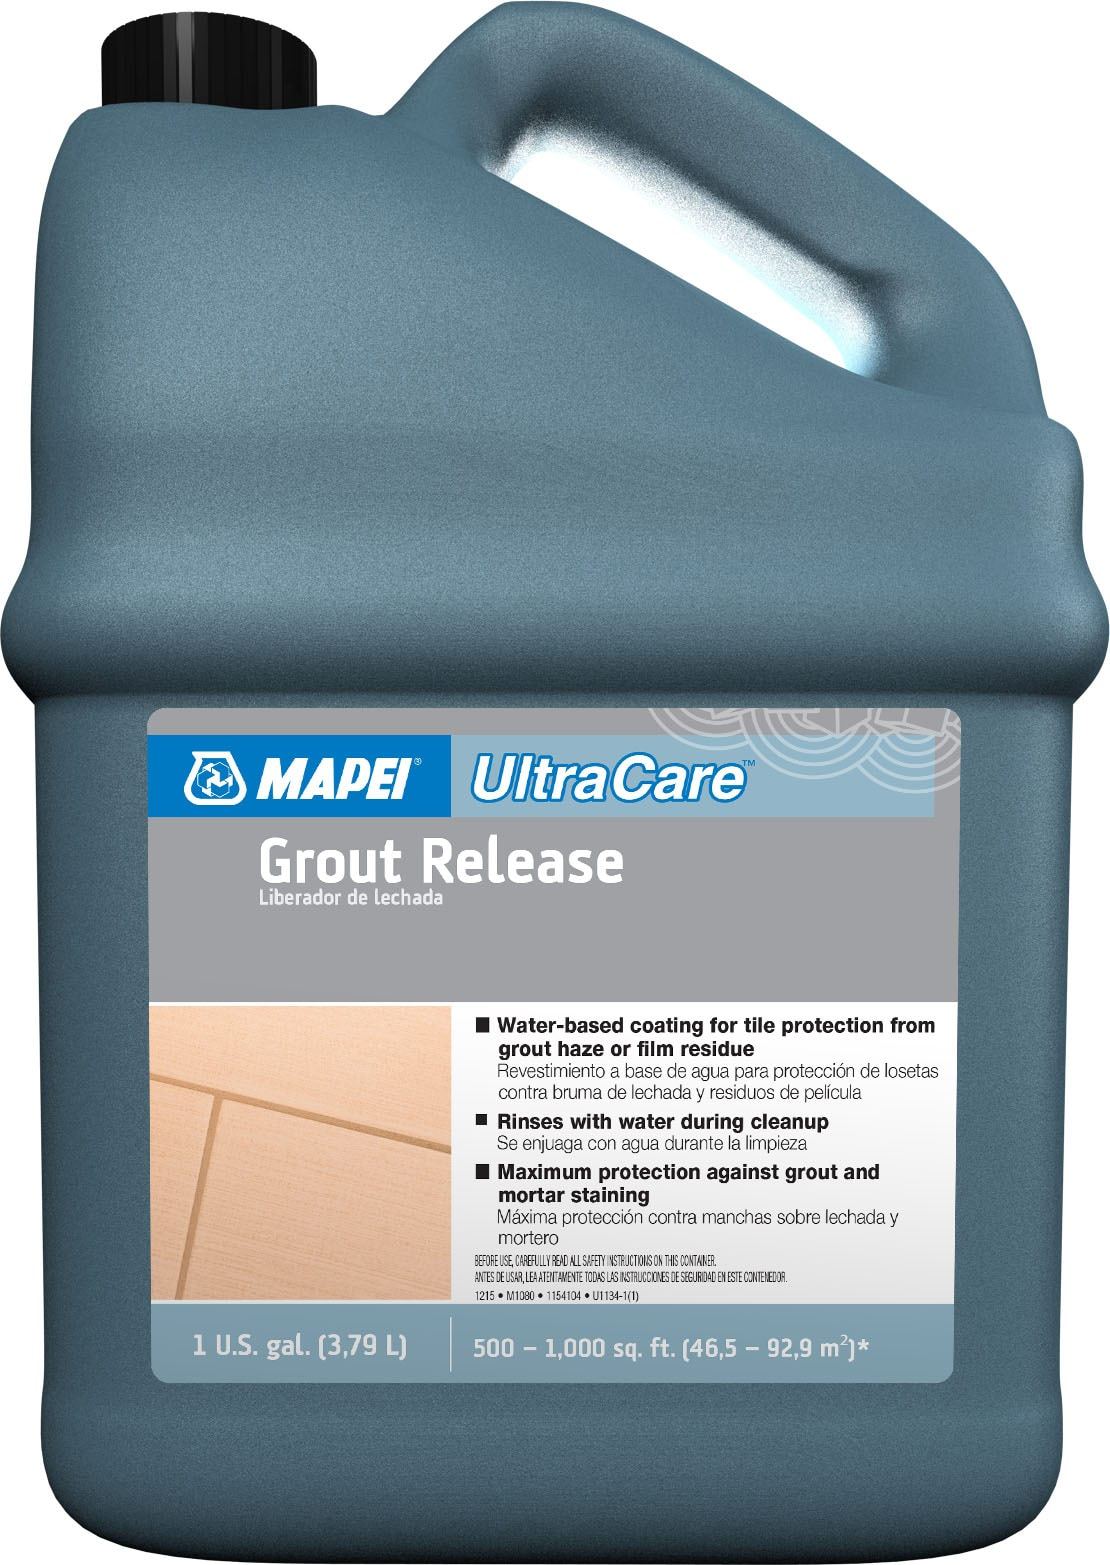 UltraCare Grout Release